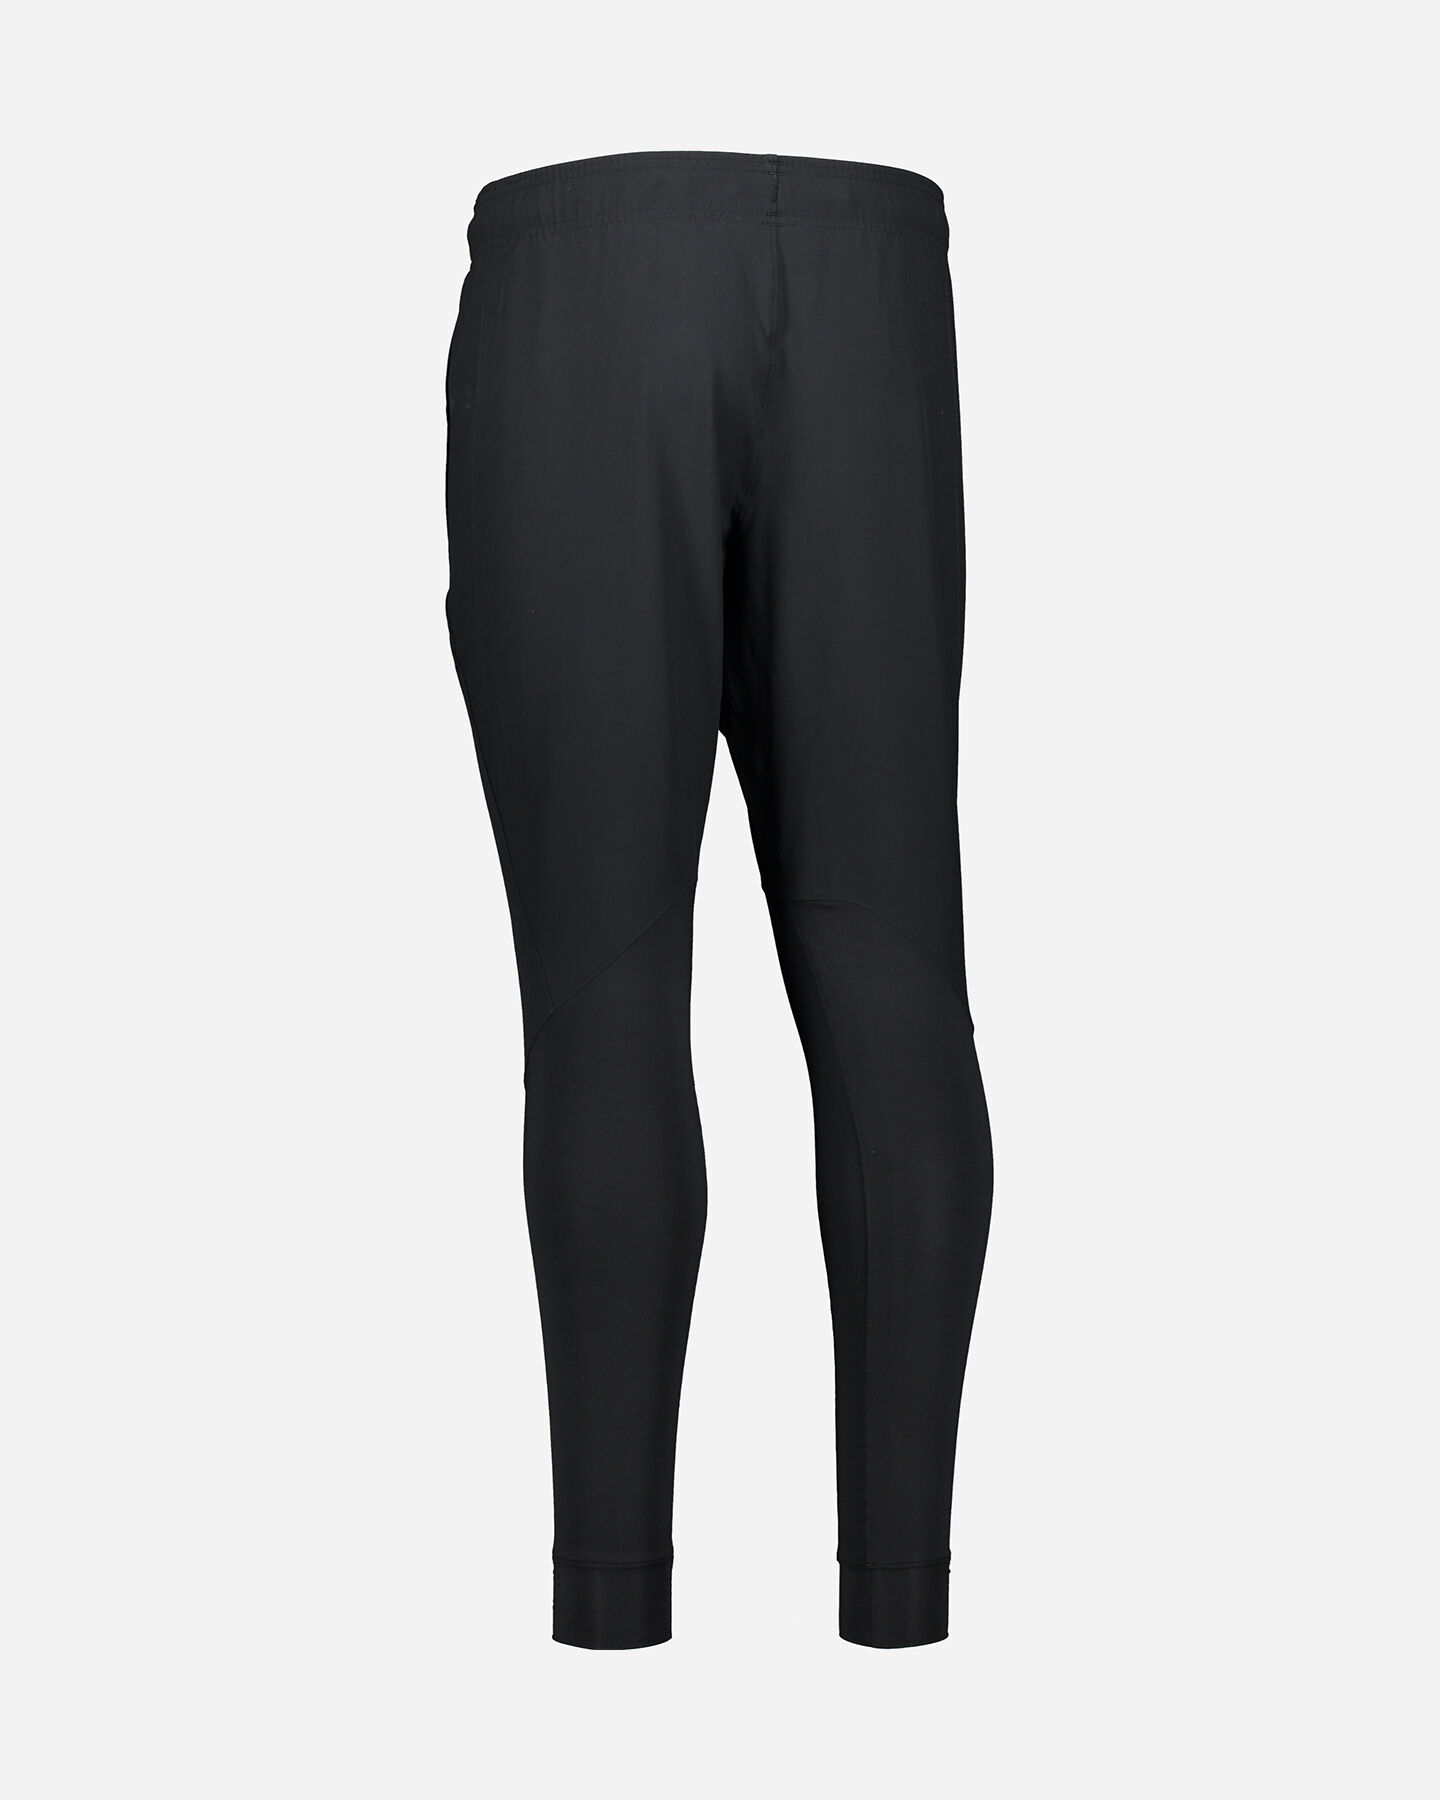 Pantalone training UNDER ARMOUR HYBRID M S5169336 scatto 2